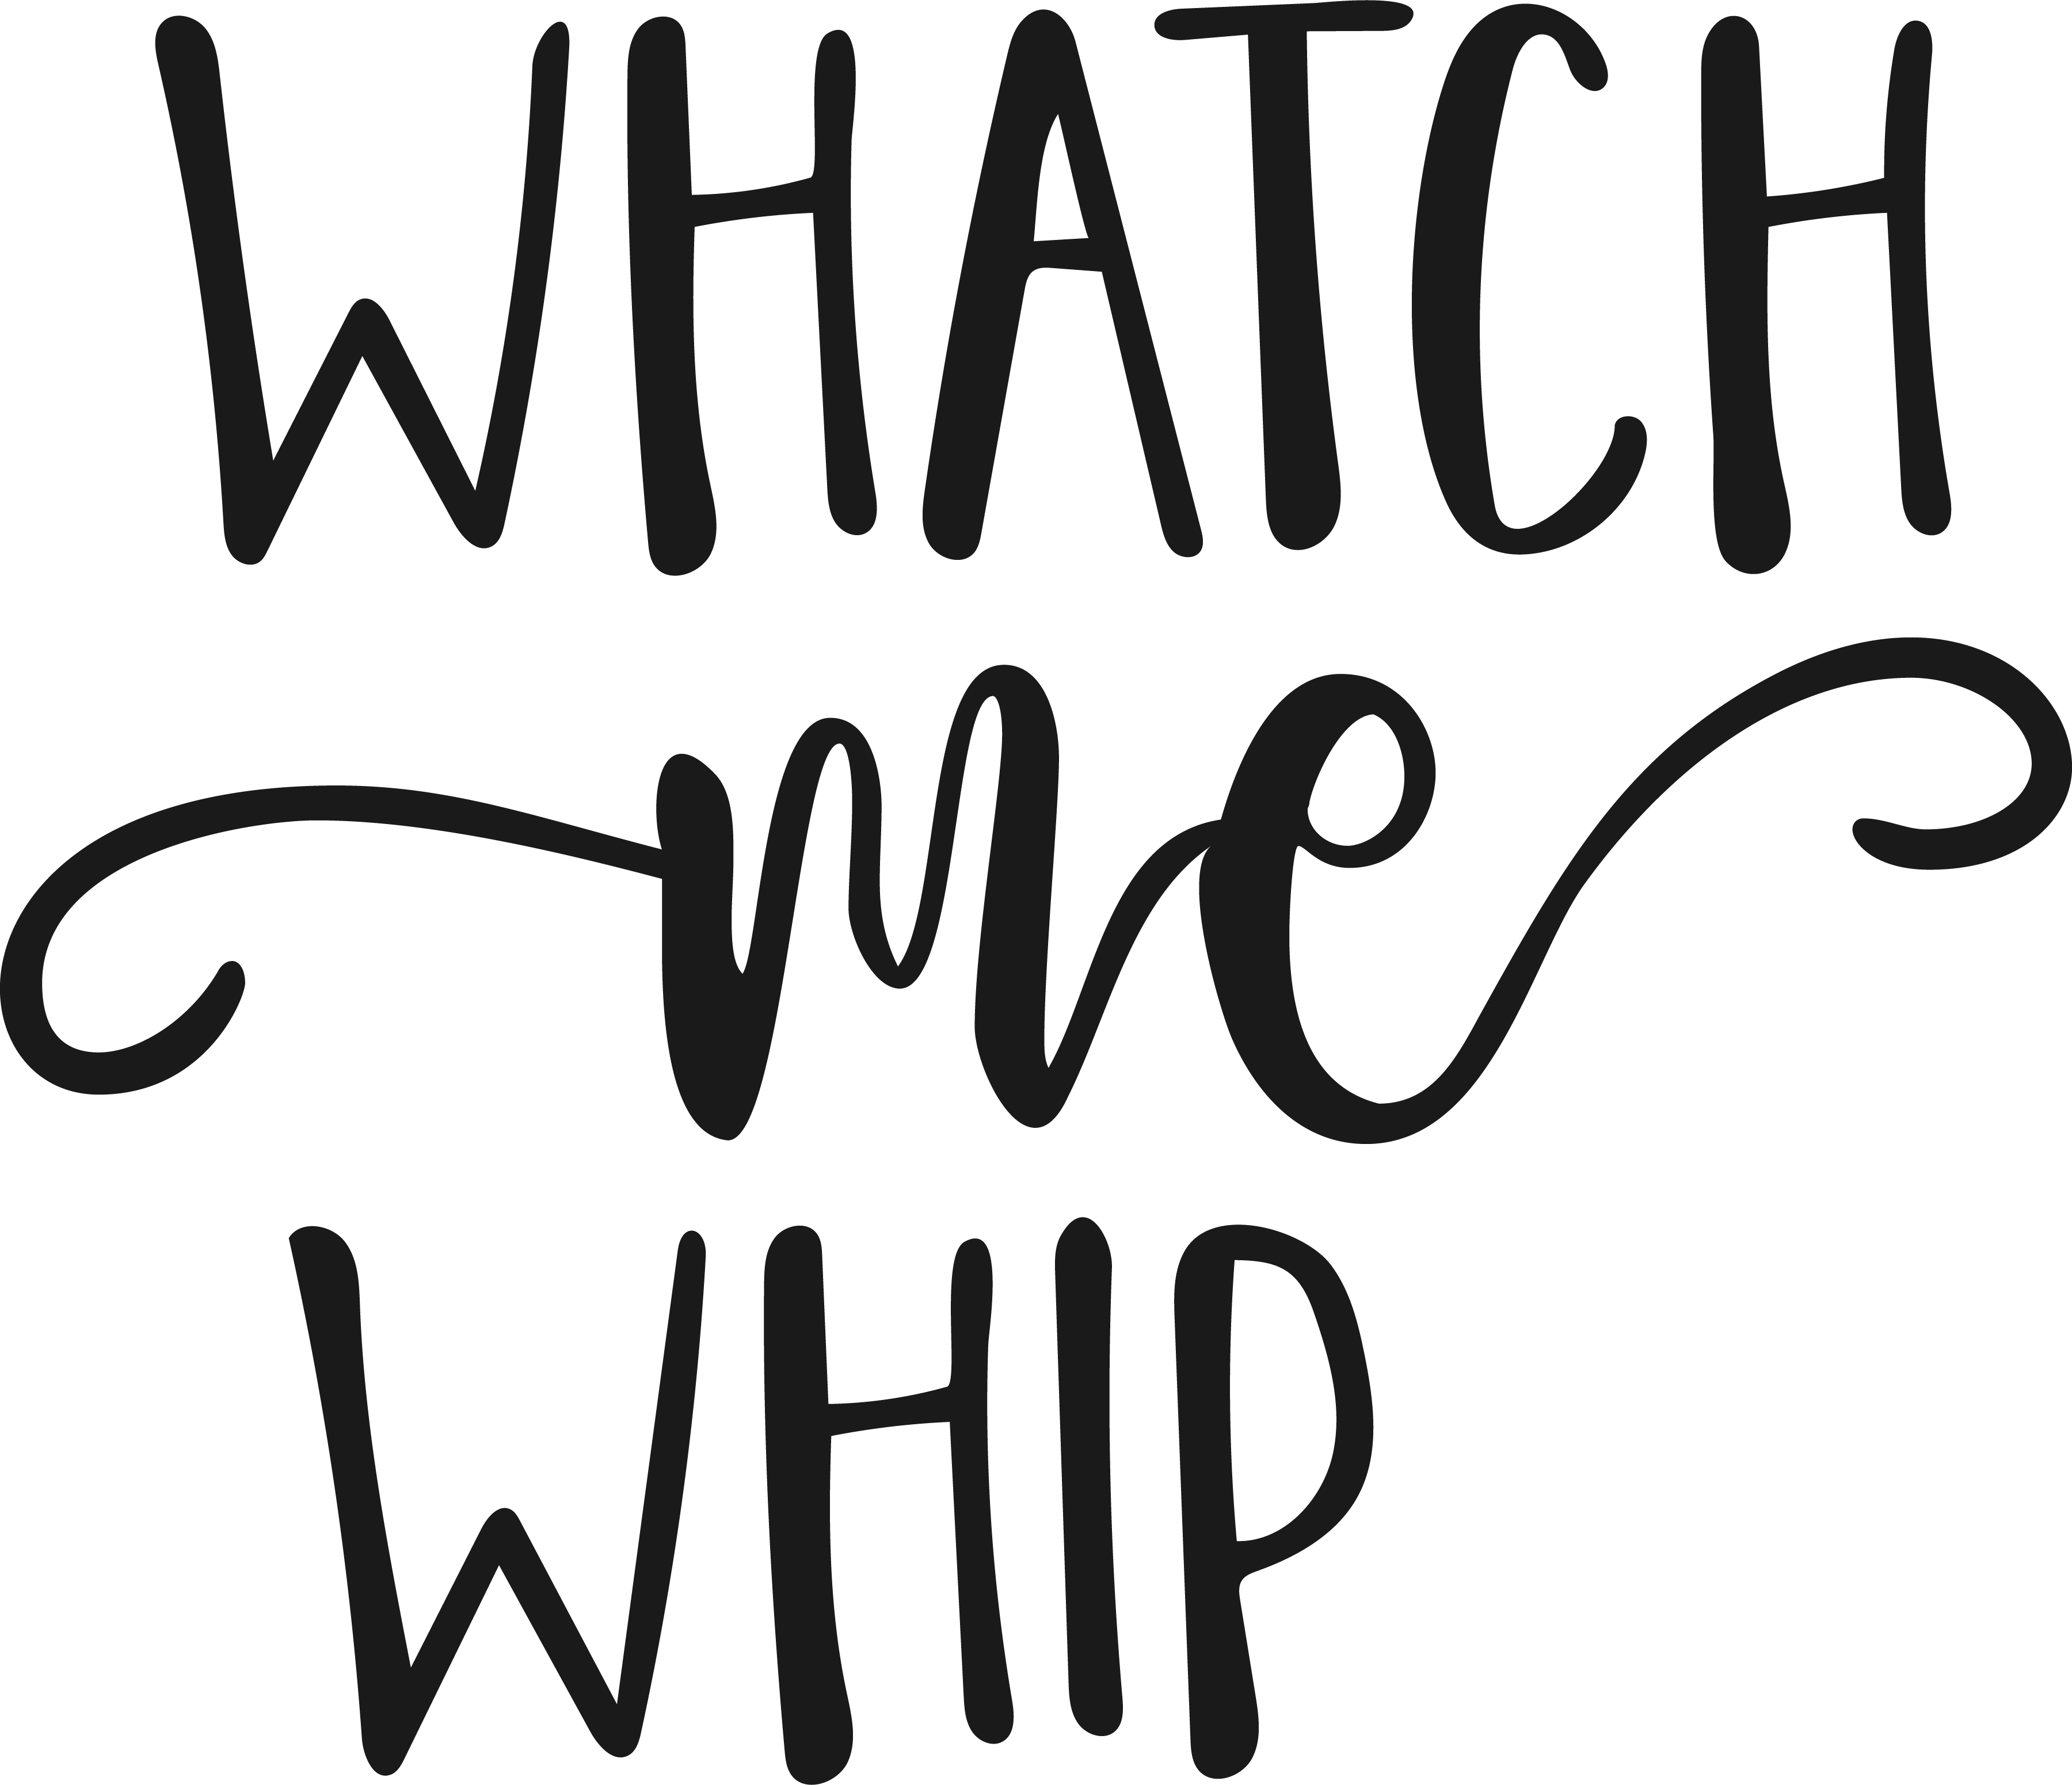 Whatch Me Whip